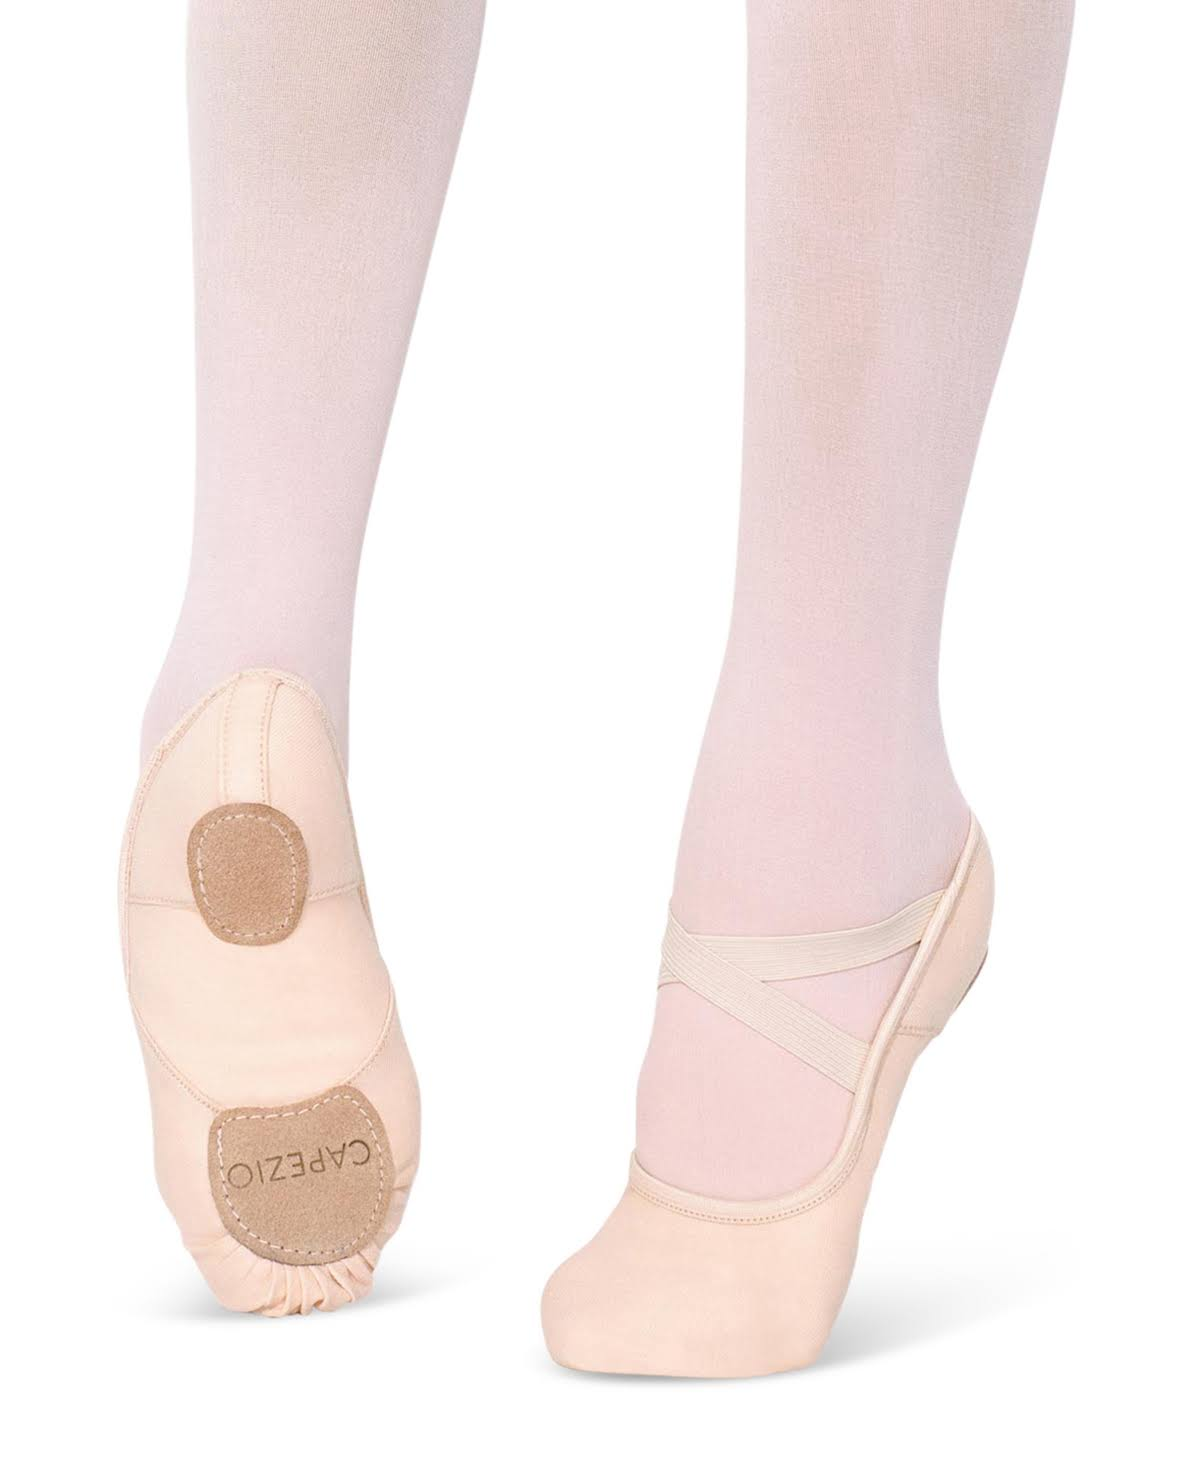 Capezio Womens Hanami Ballet Slipper - Light Pink, 8.5 US